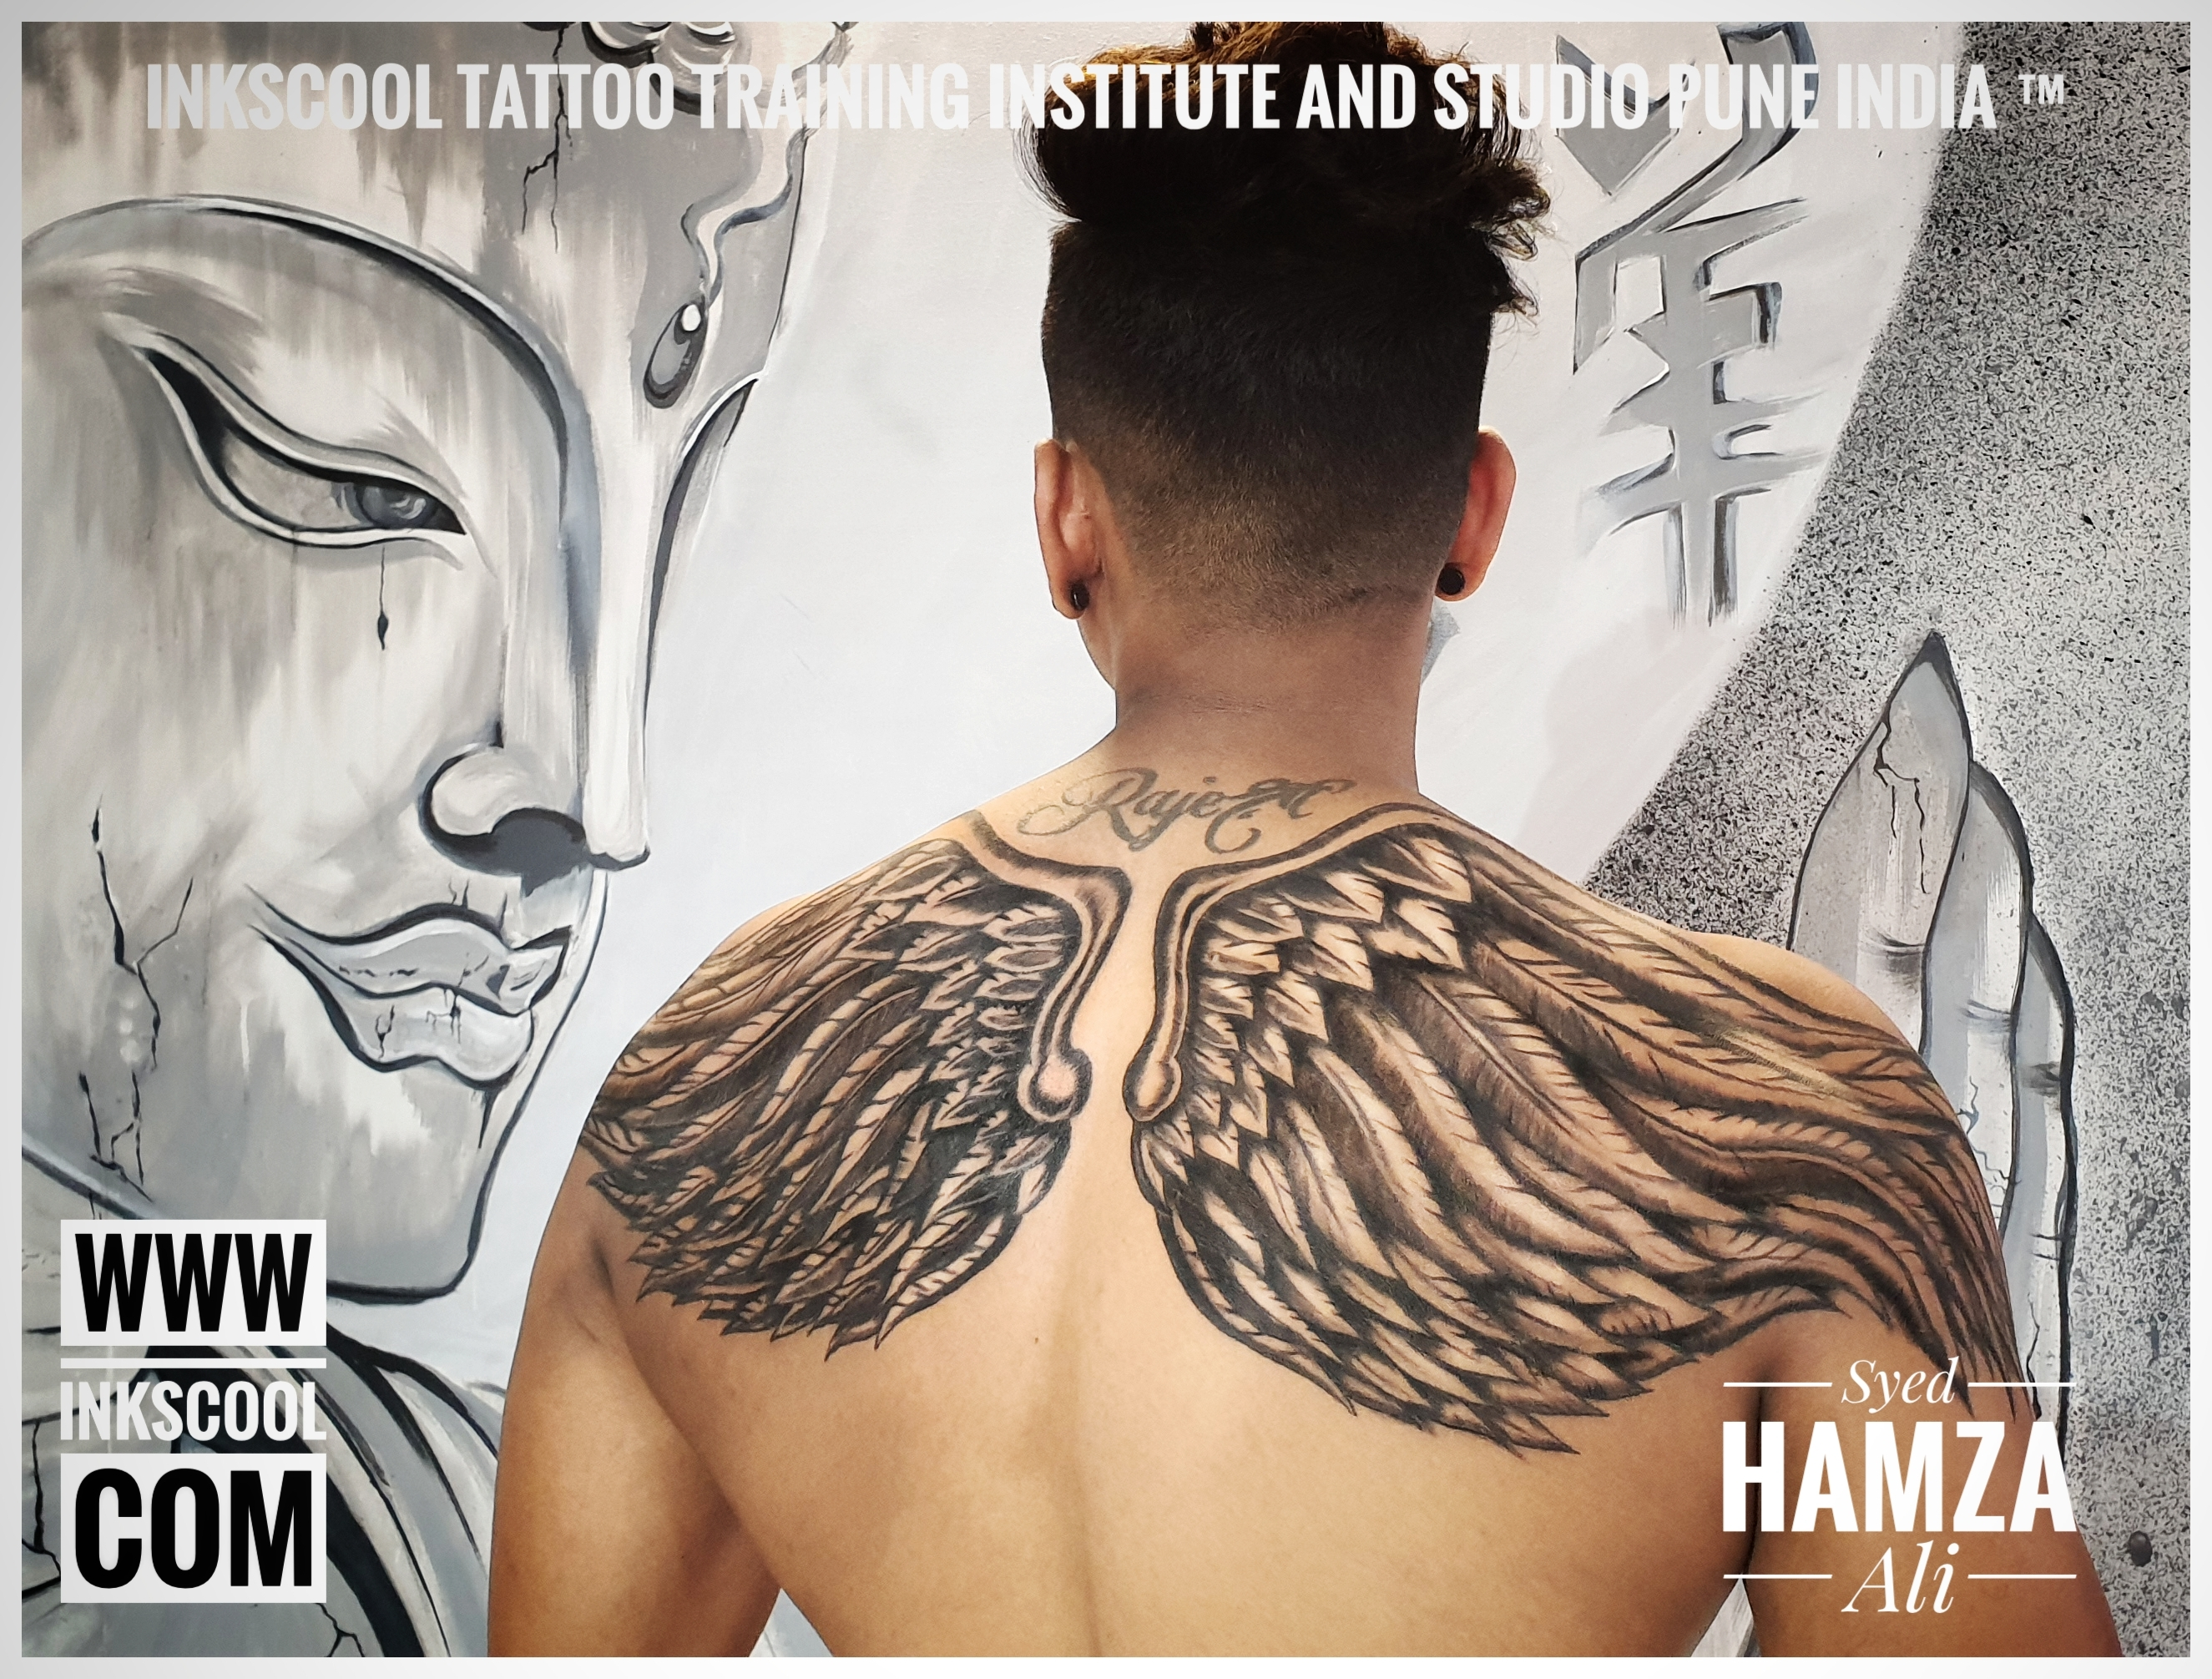 Inkscooltattoos_wings_back_tattoo